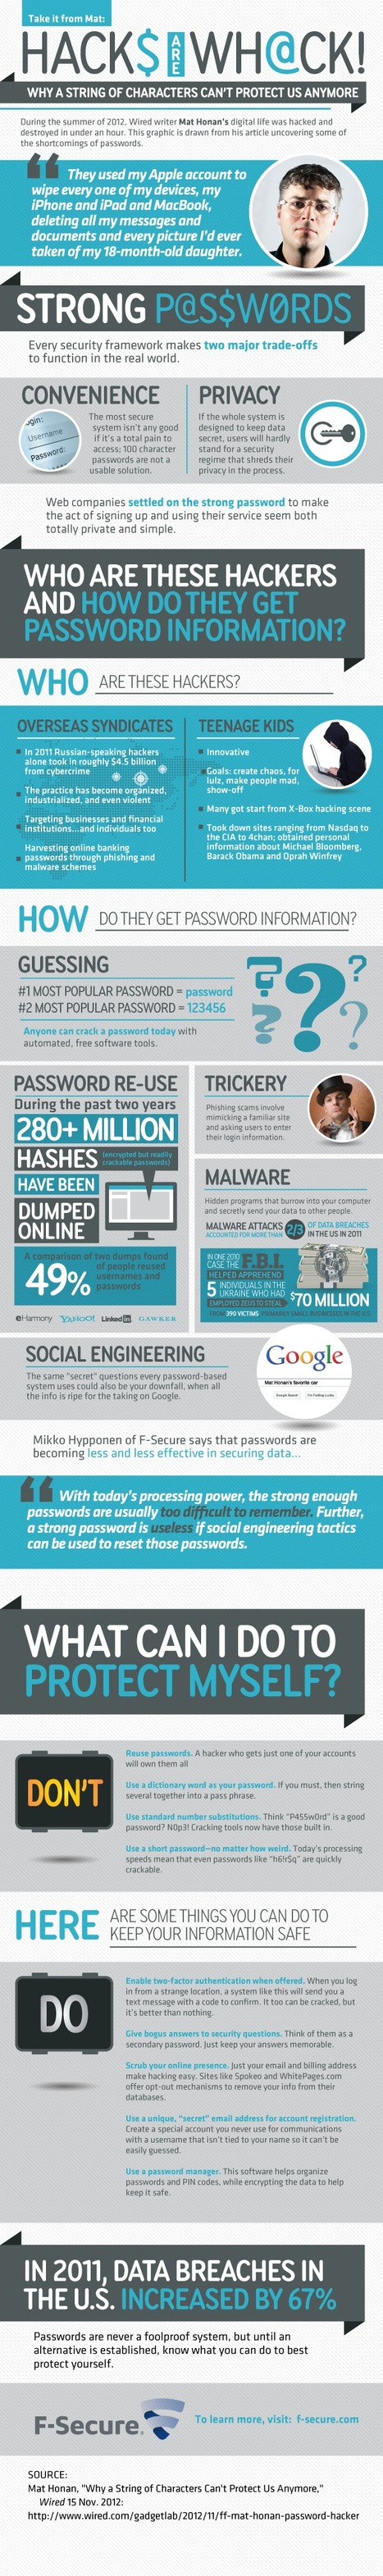 Hacking lessons learned: how to cover your digital ass [Infographic] | A New Society, a new education! | Scoop.it